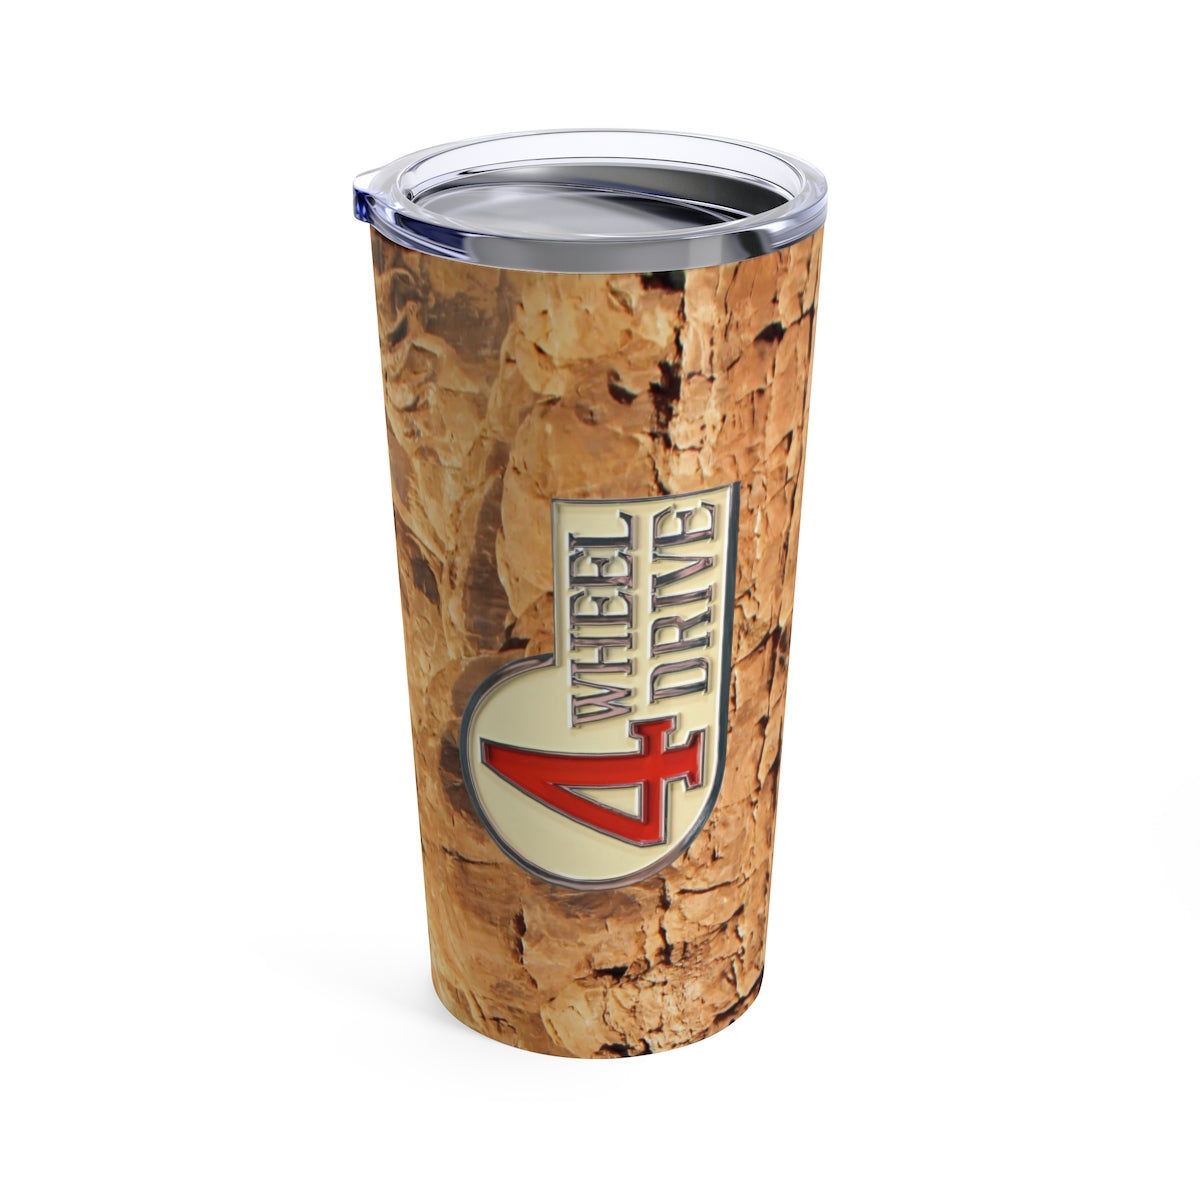 Toyota 4 Wheel Drive Land Cruiser Rocks Travel Mug Tumbler by Reefmonkey